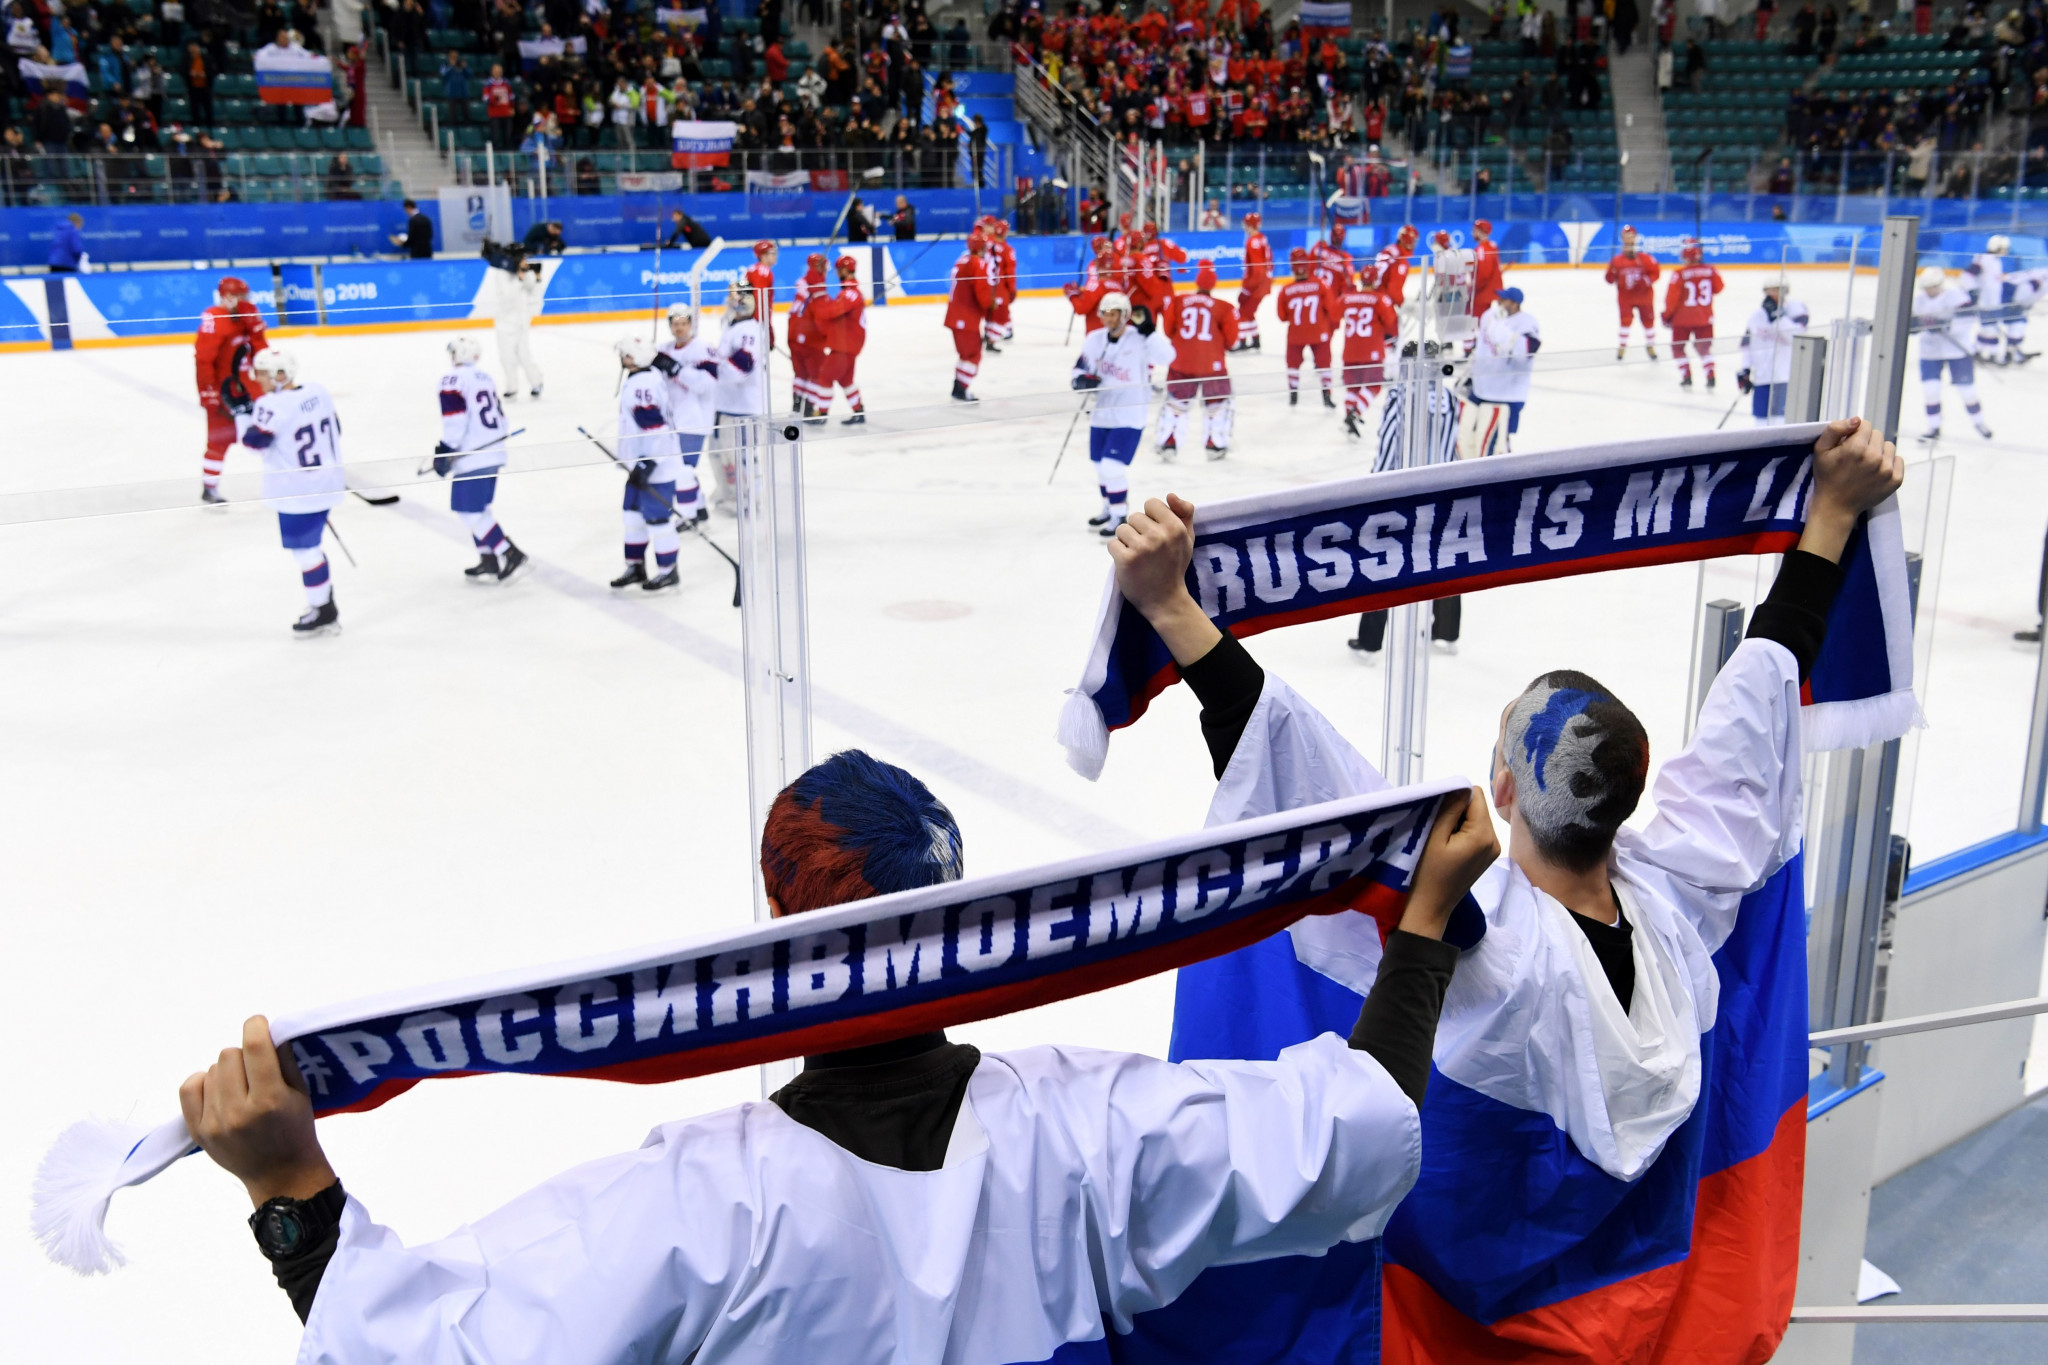 Russia were banned from competing under their own flag at Pyeongchang 2018 ©Getty Images